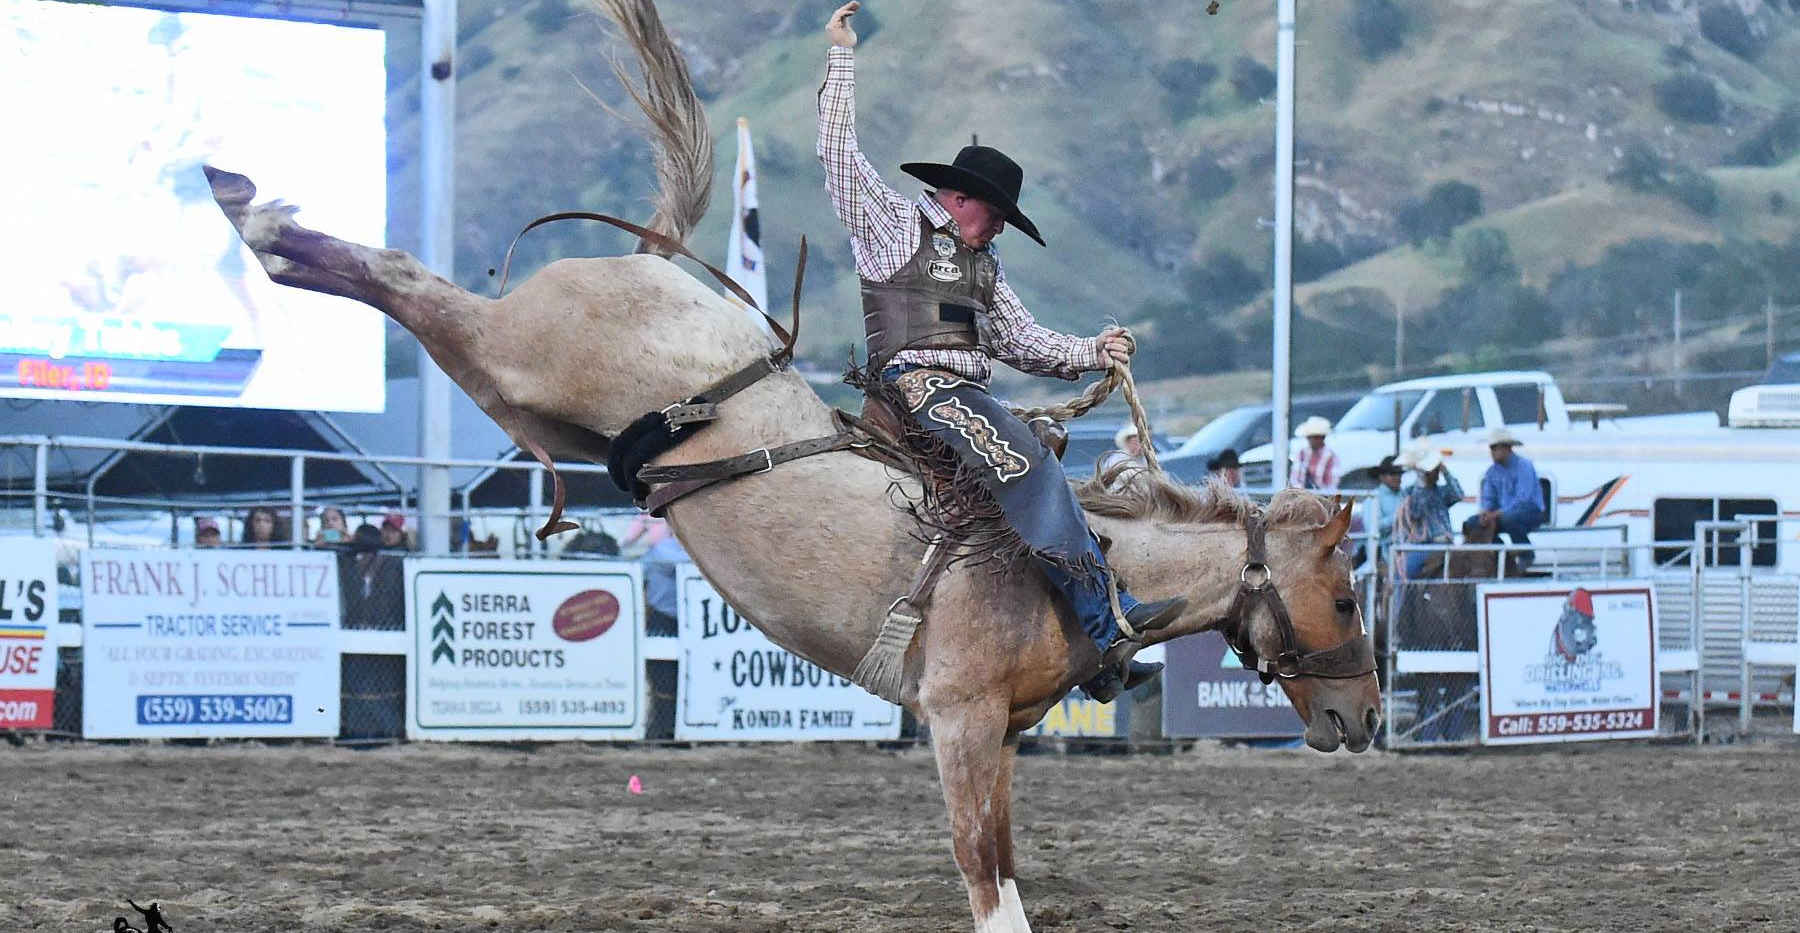 Bronc Riding at the Springville Sierra Rodeo